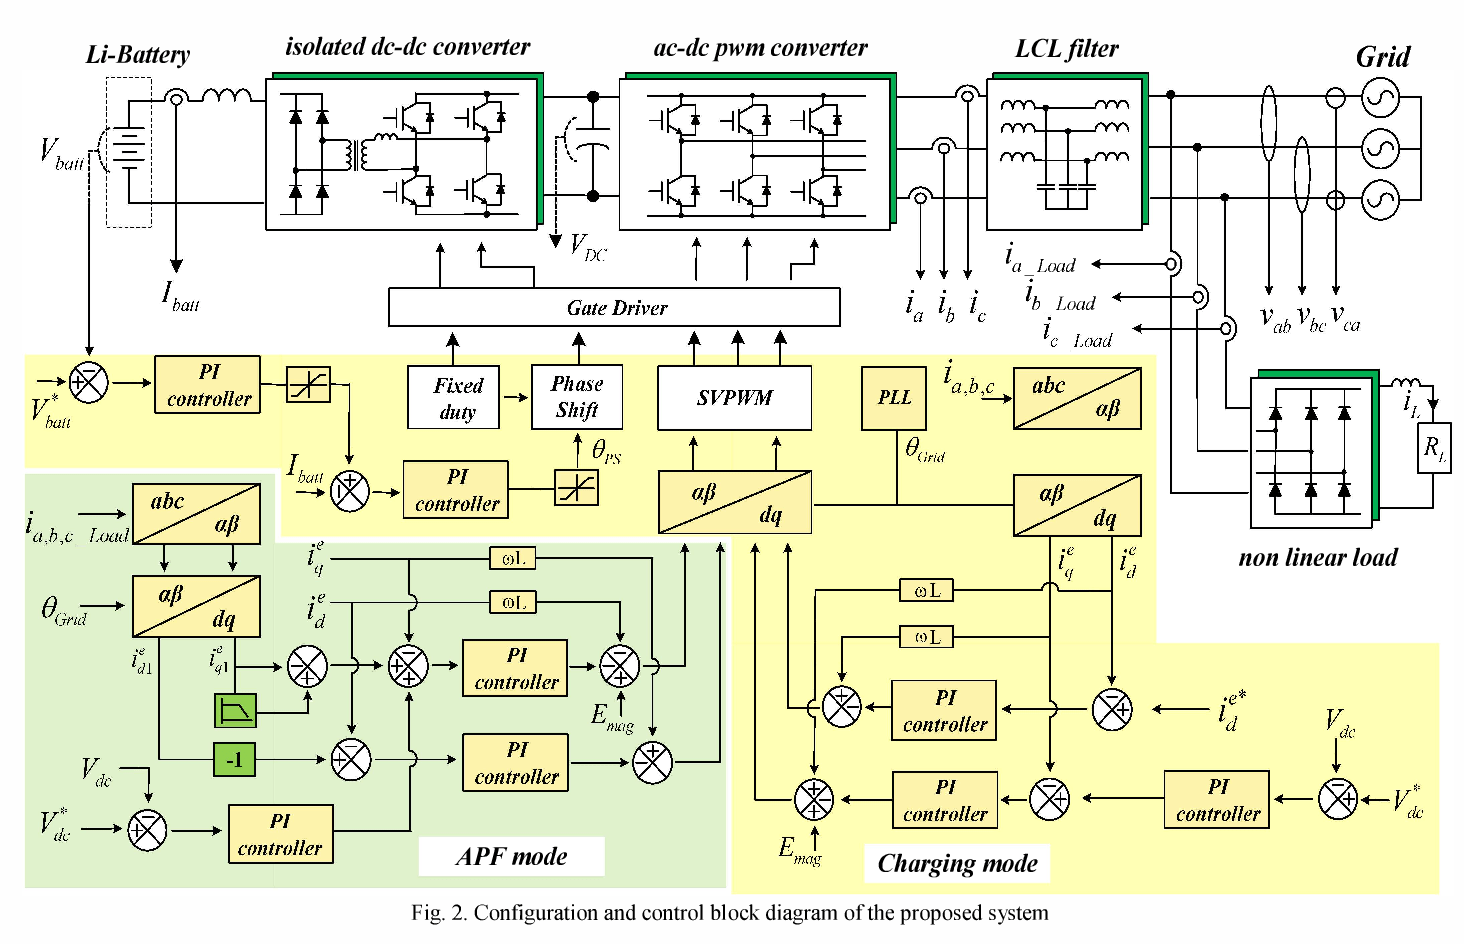 hight resolution of configuration and control block diagram of the proposed system